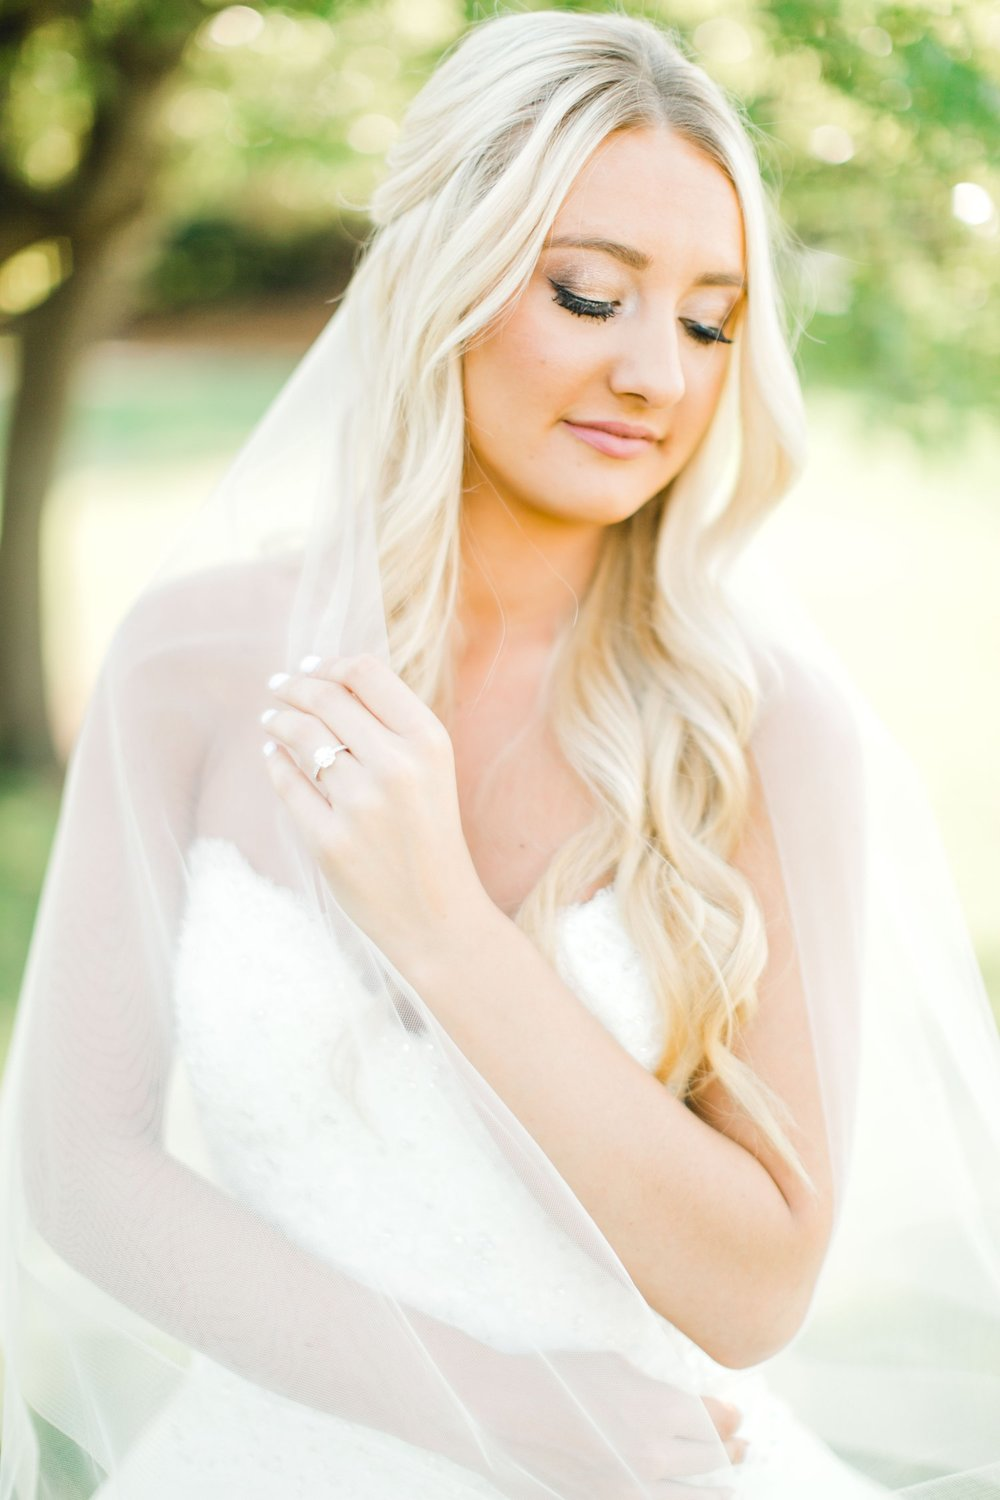 MADI_WRIGHT_BRIDALS_ALLEEJ_LUBBOCK_PHOTOGRAPHER0015.jpg